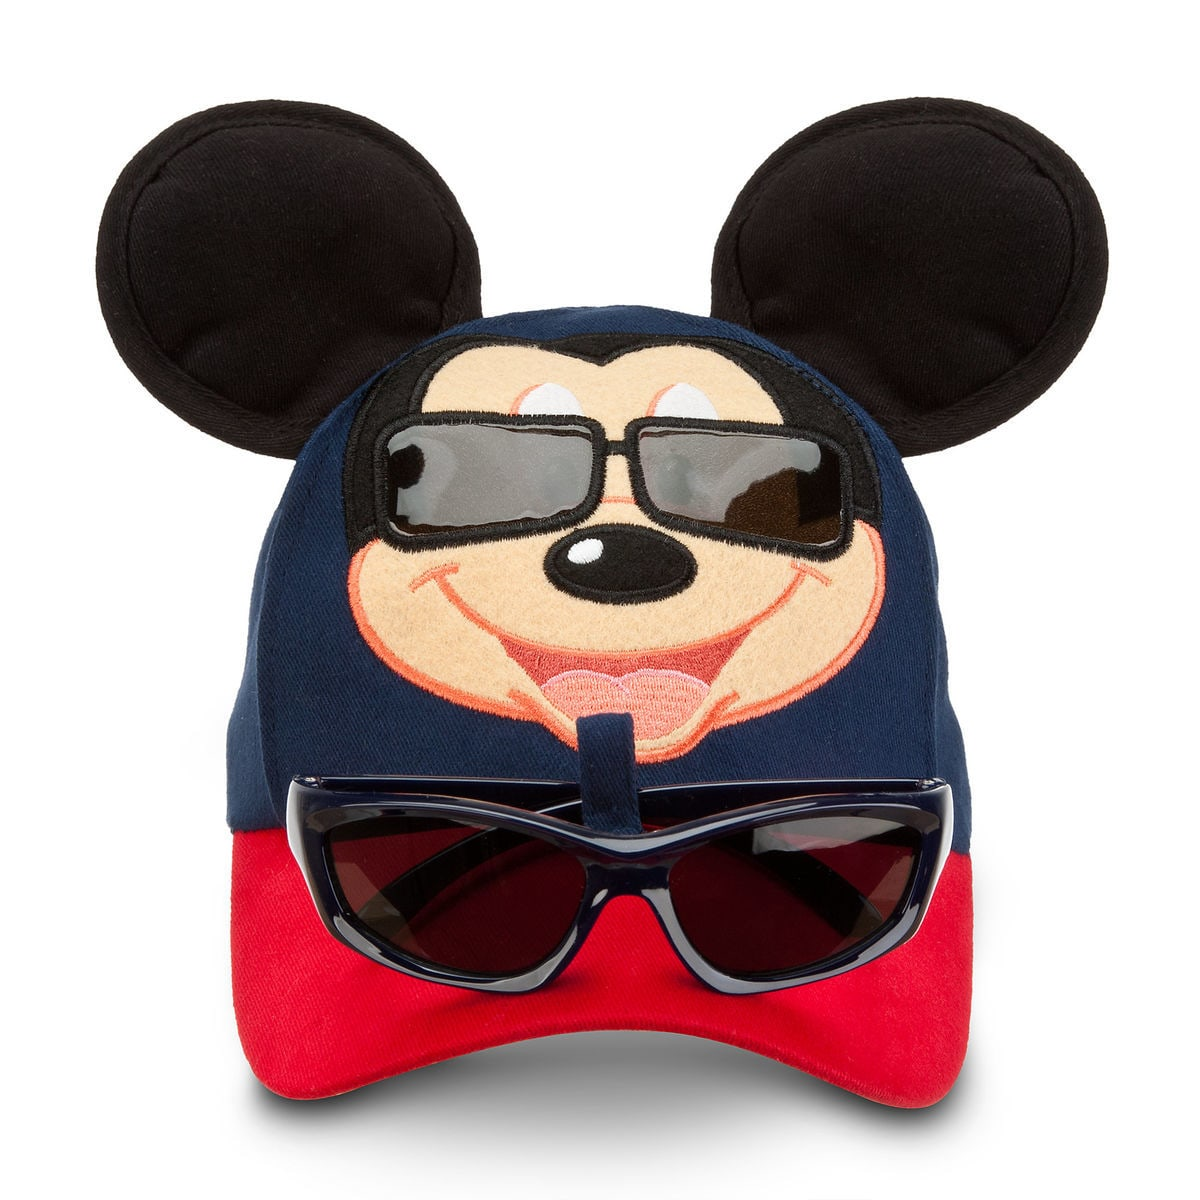 e5ddd3ac608 Product Image of Mickey Mouse Baseball Cap for Toddlers with Sunglasses   1